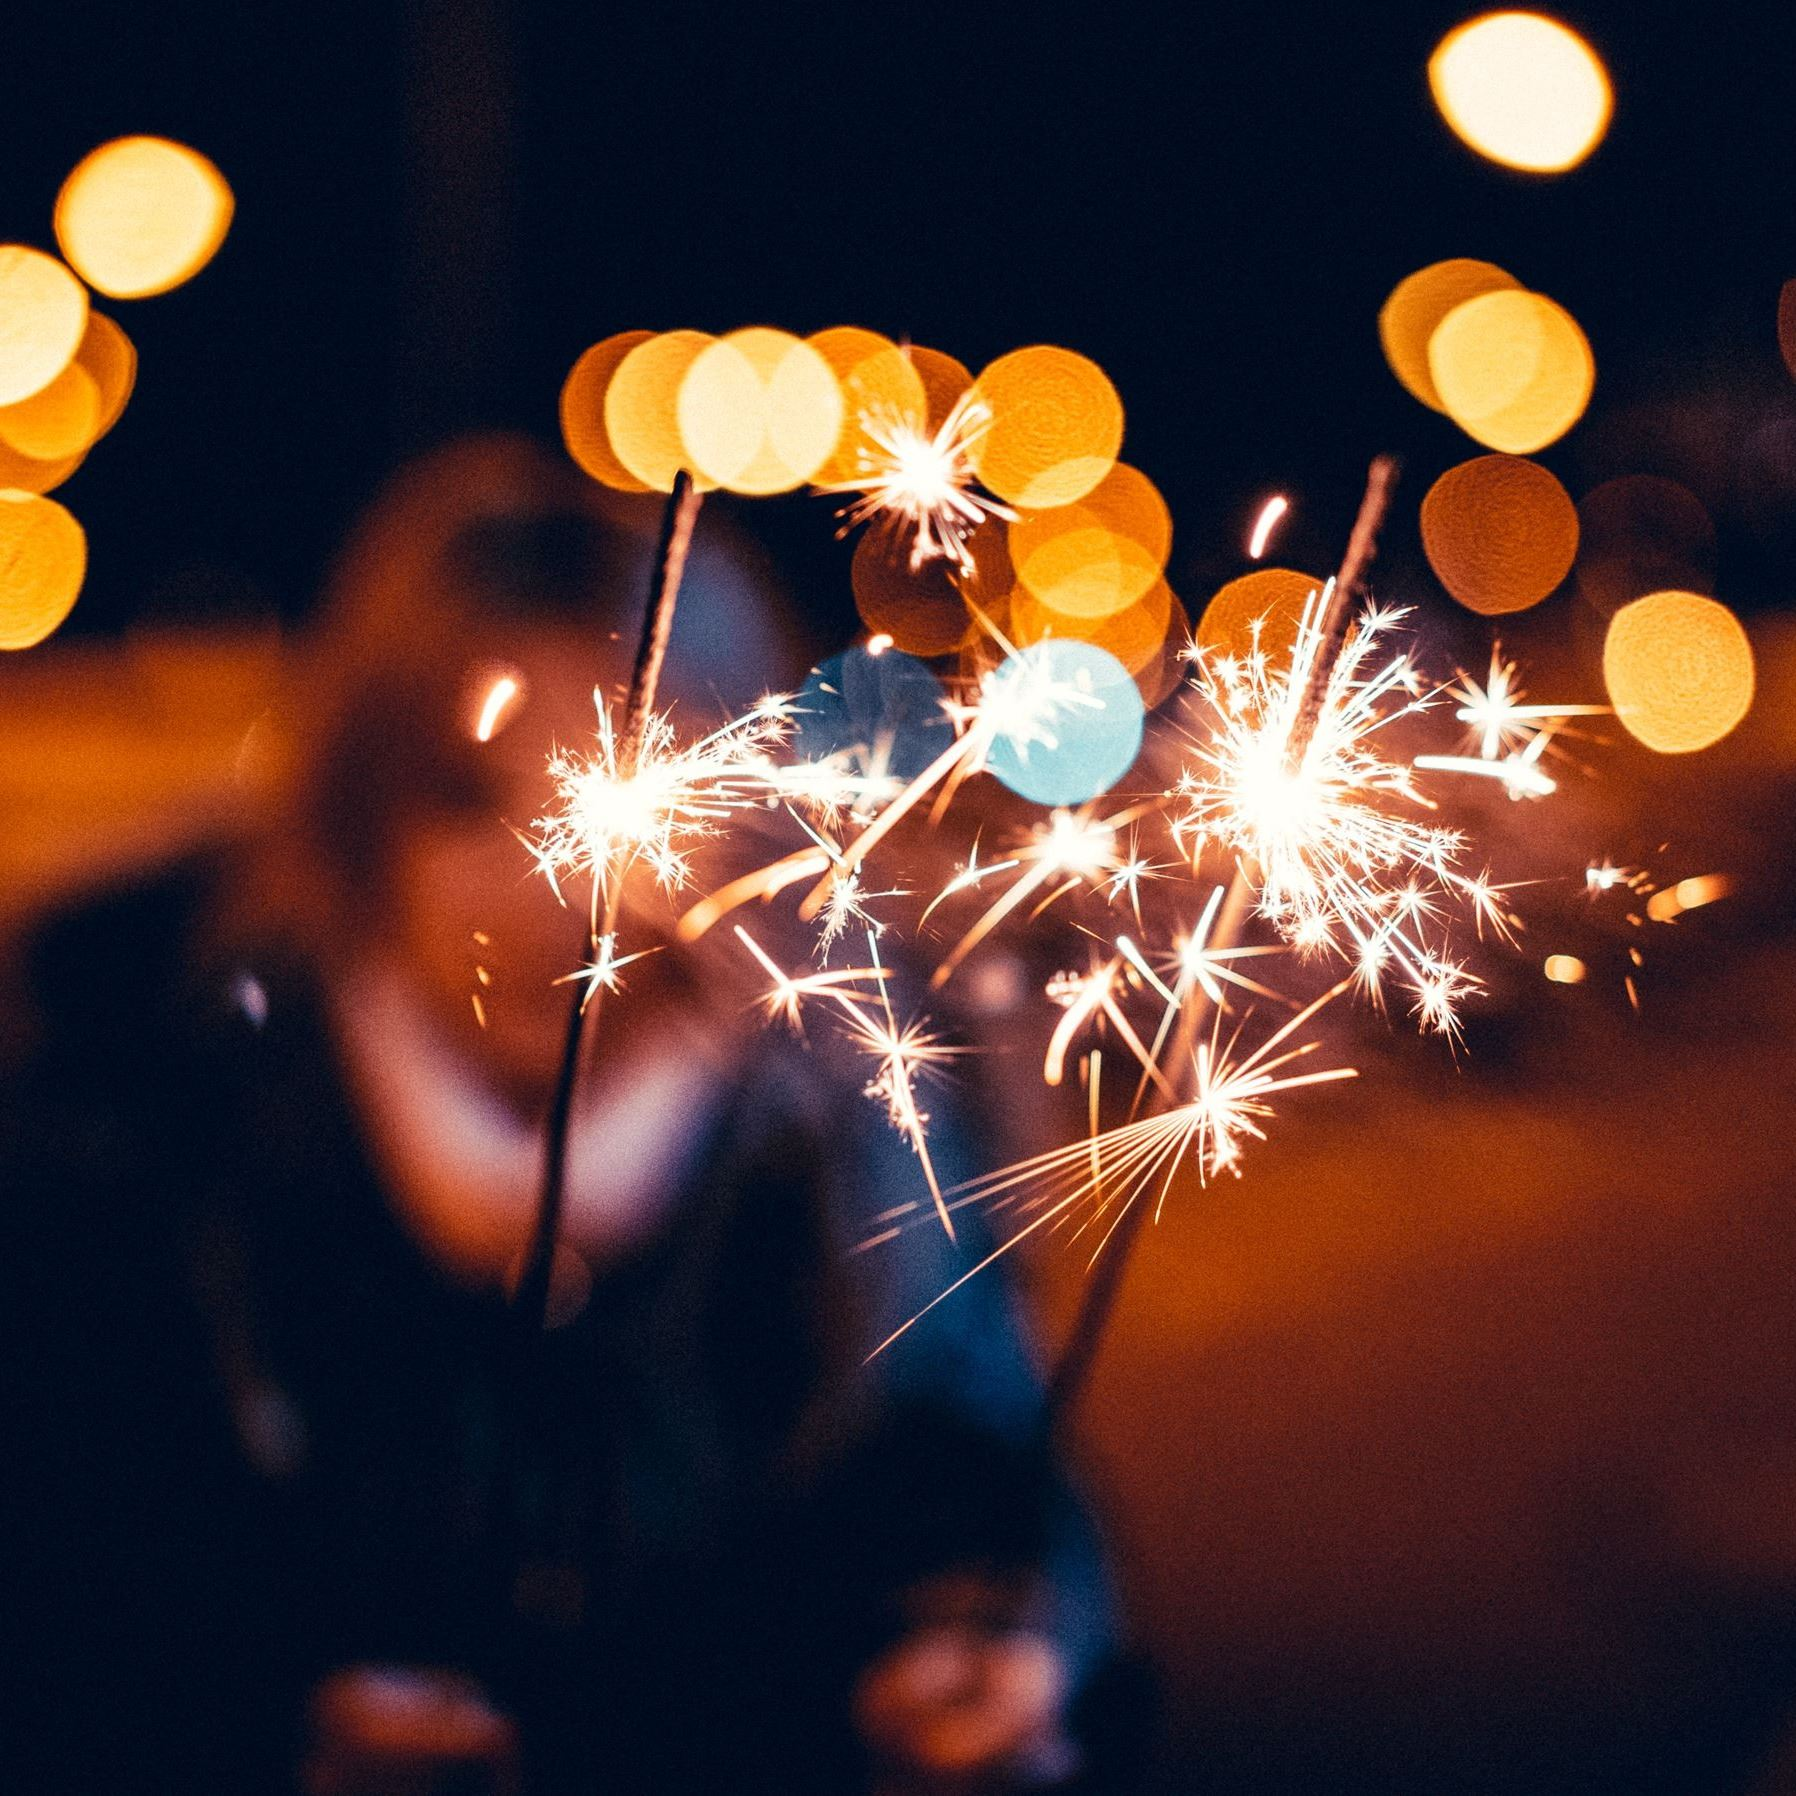 woman-holding-sparklers-in-hands-picjumbo-com